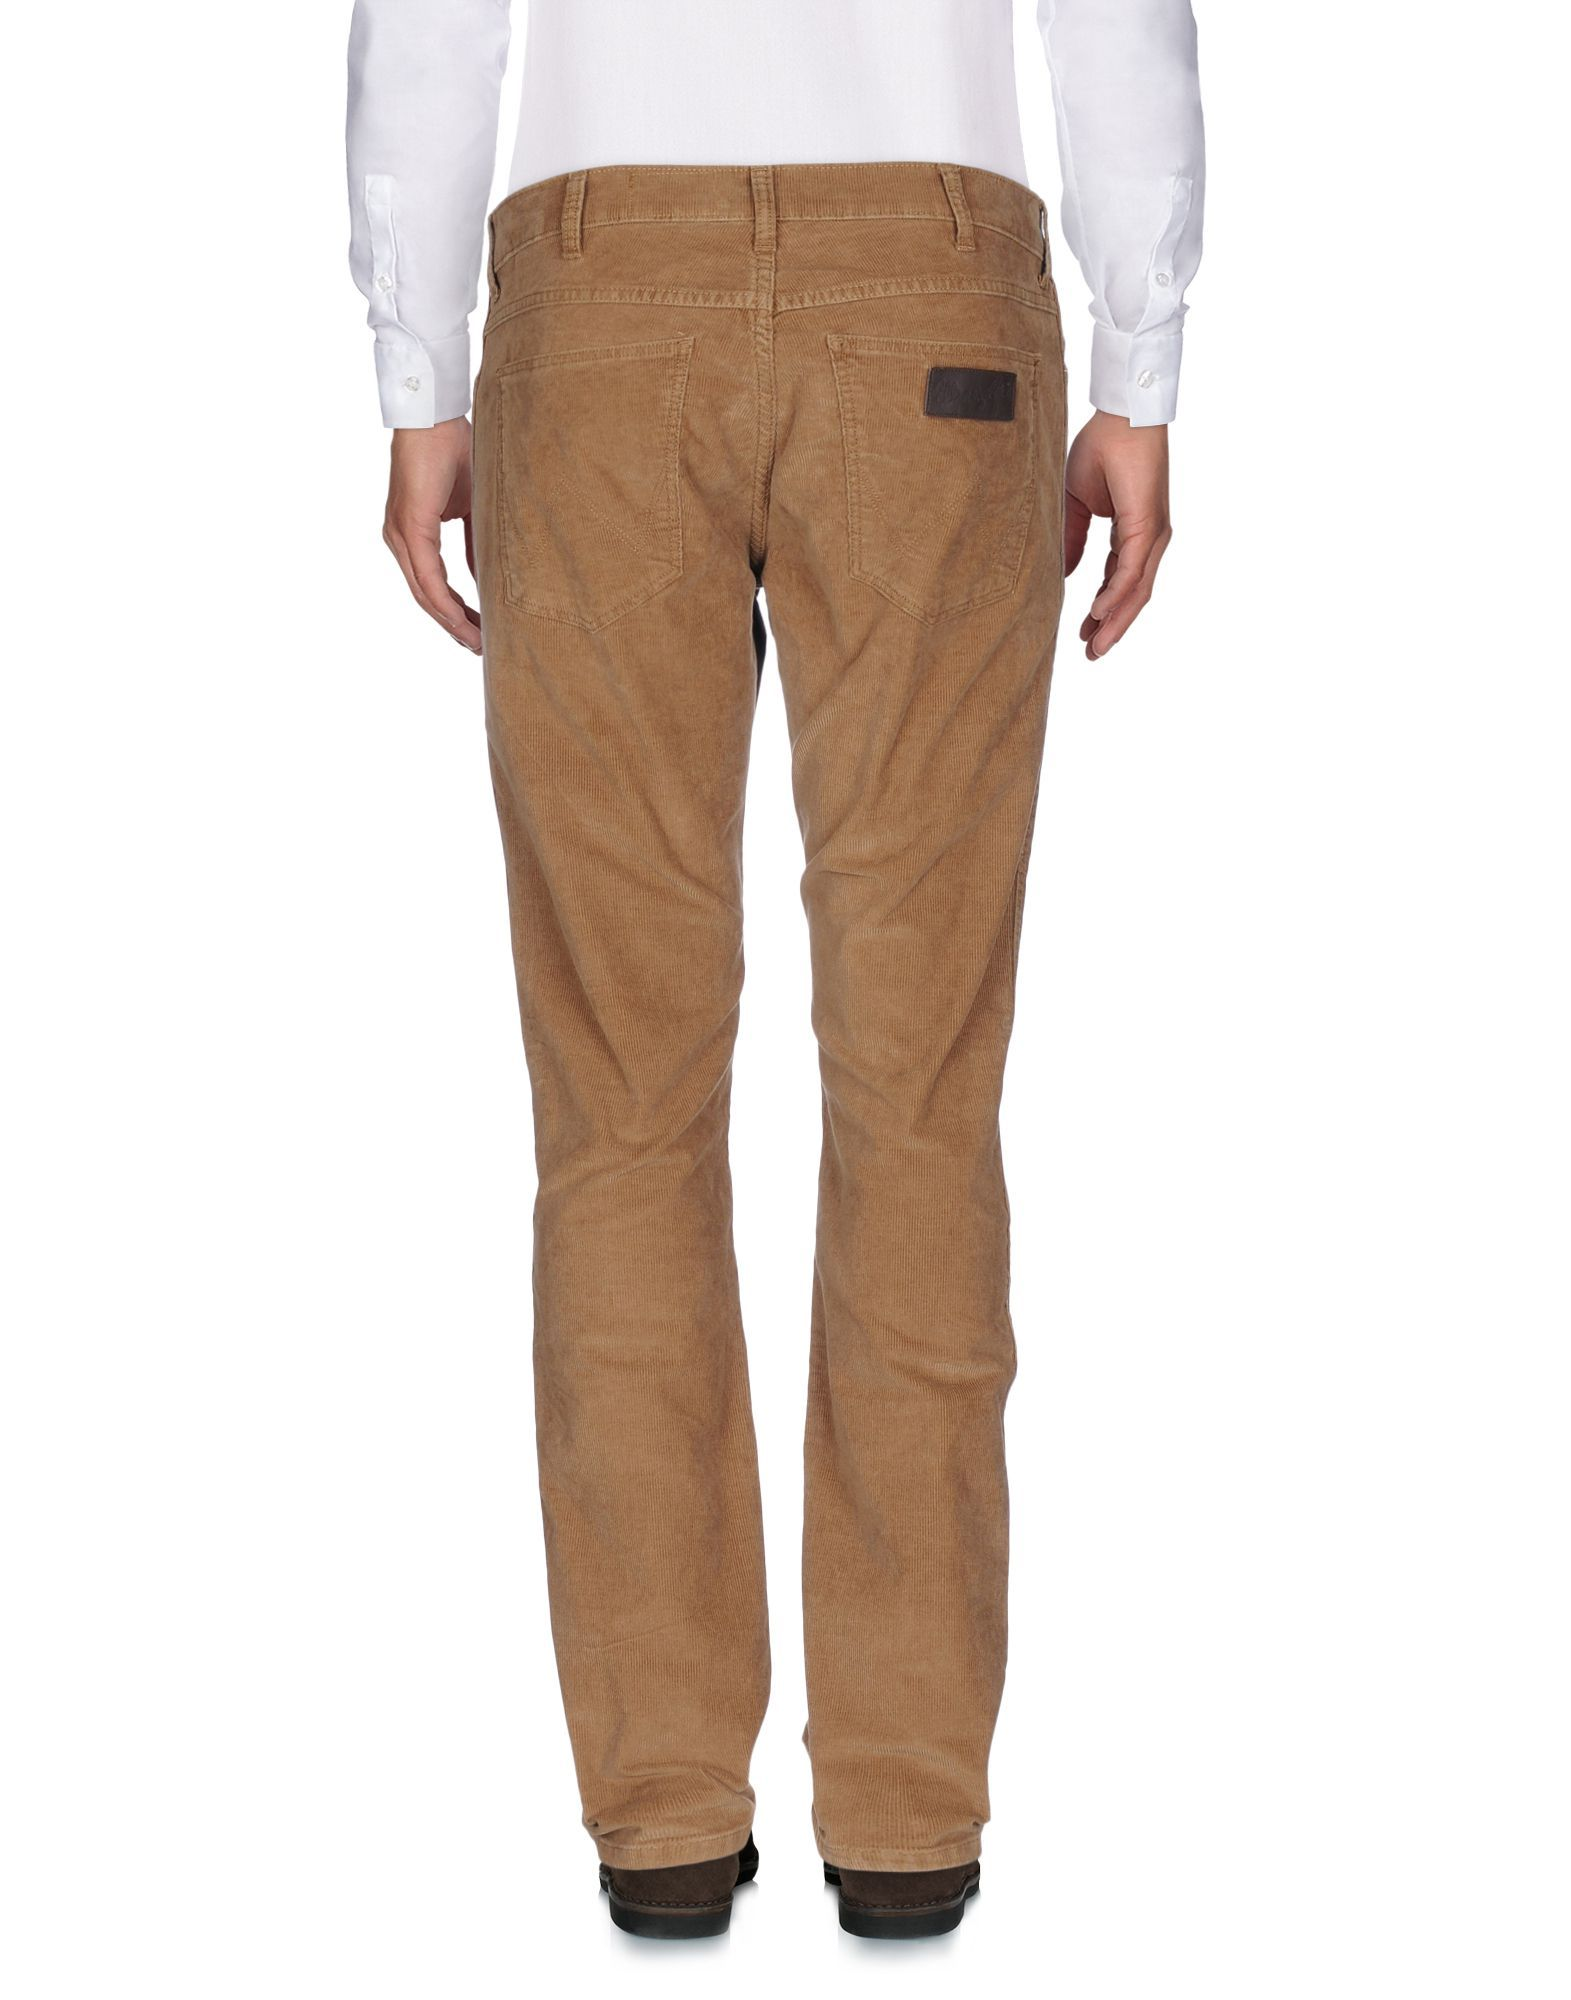 Wrangler Brown Cotton Trousers